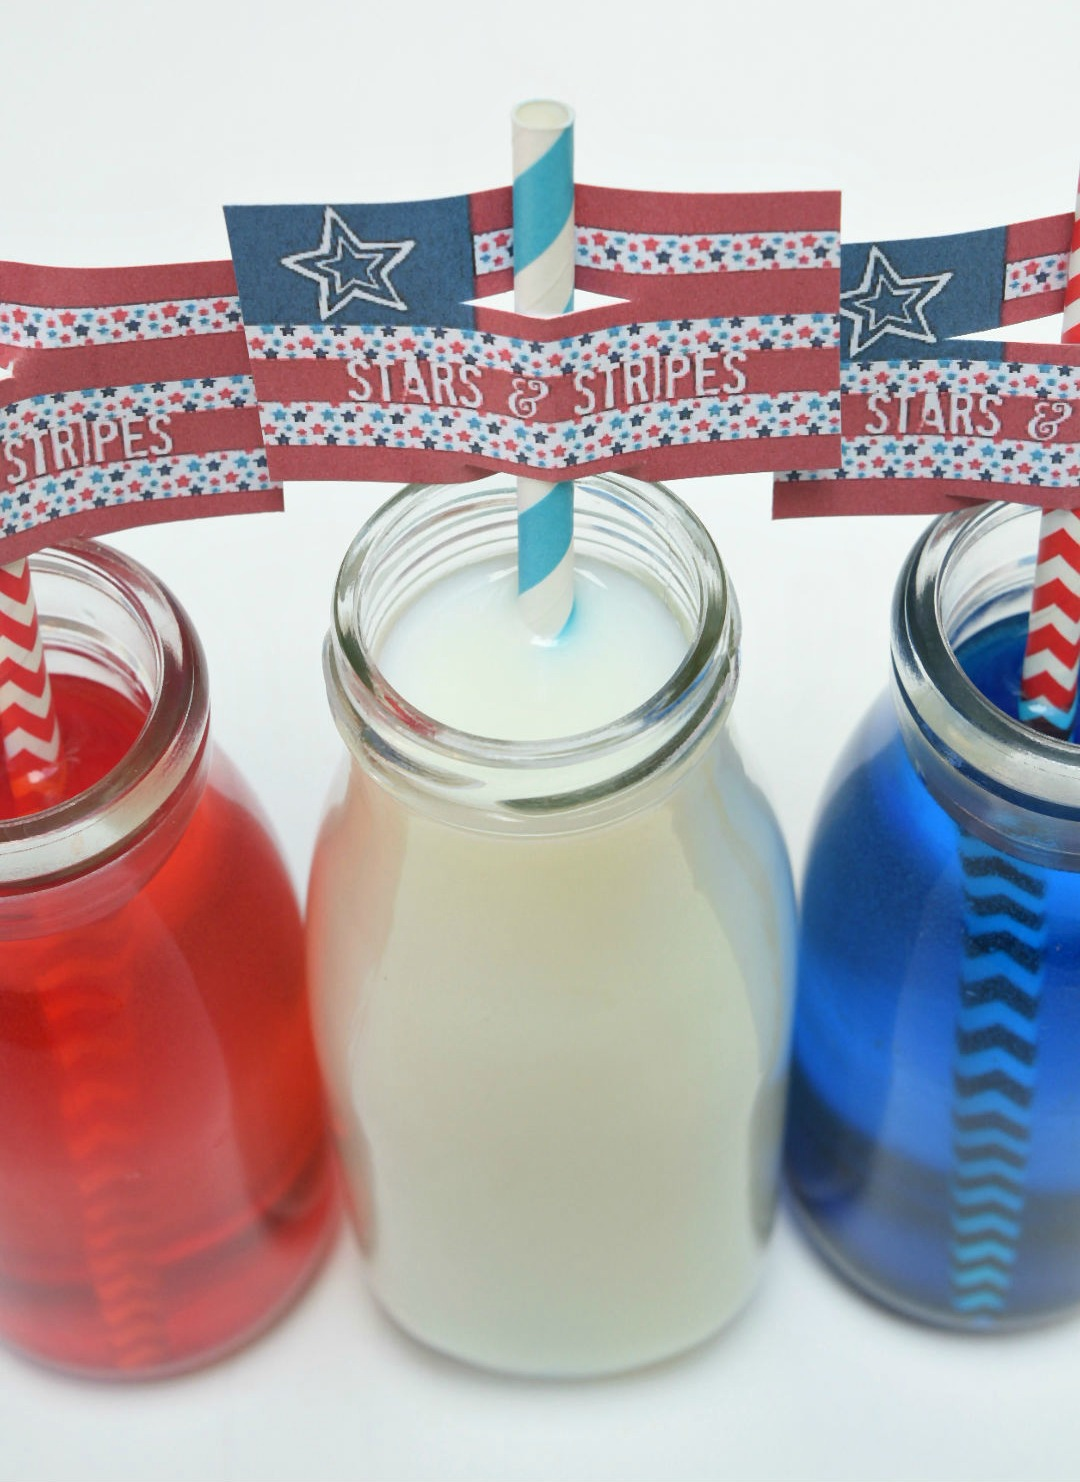 Jazz up your straws with these straw toppers